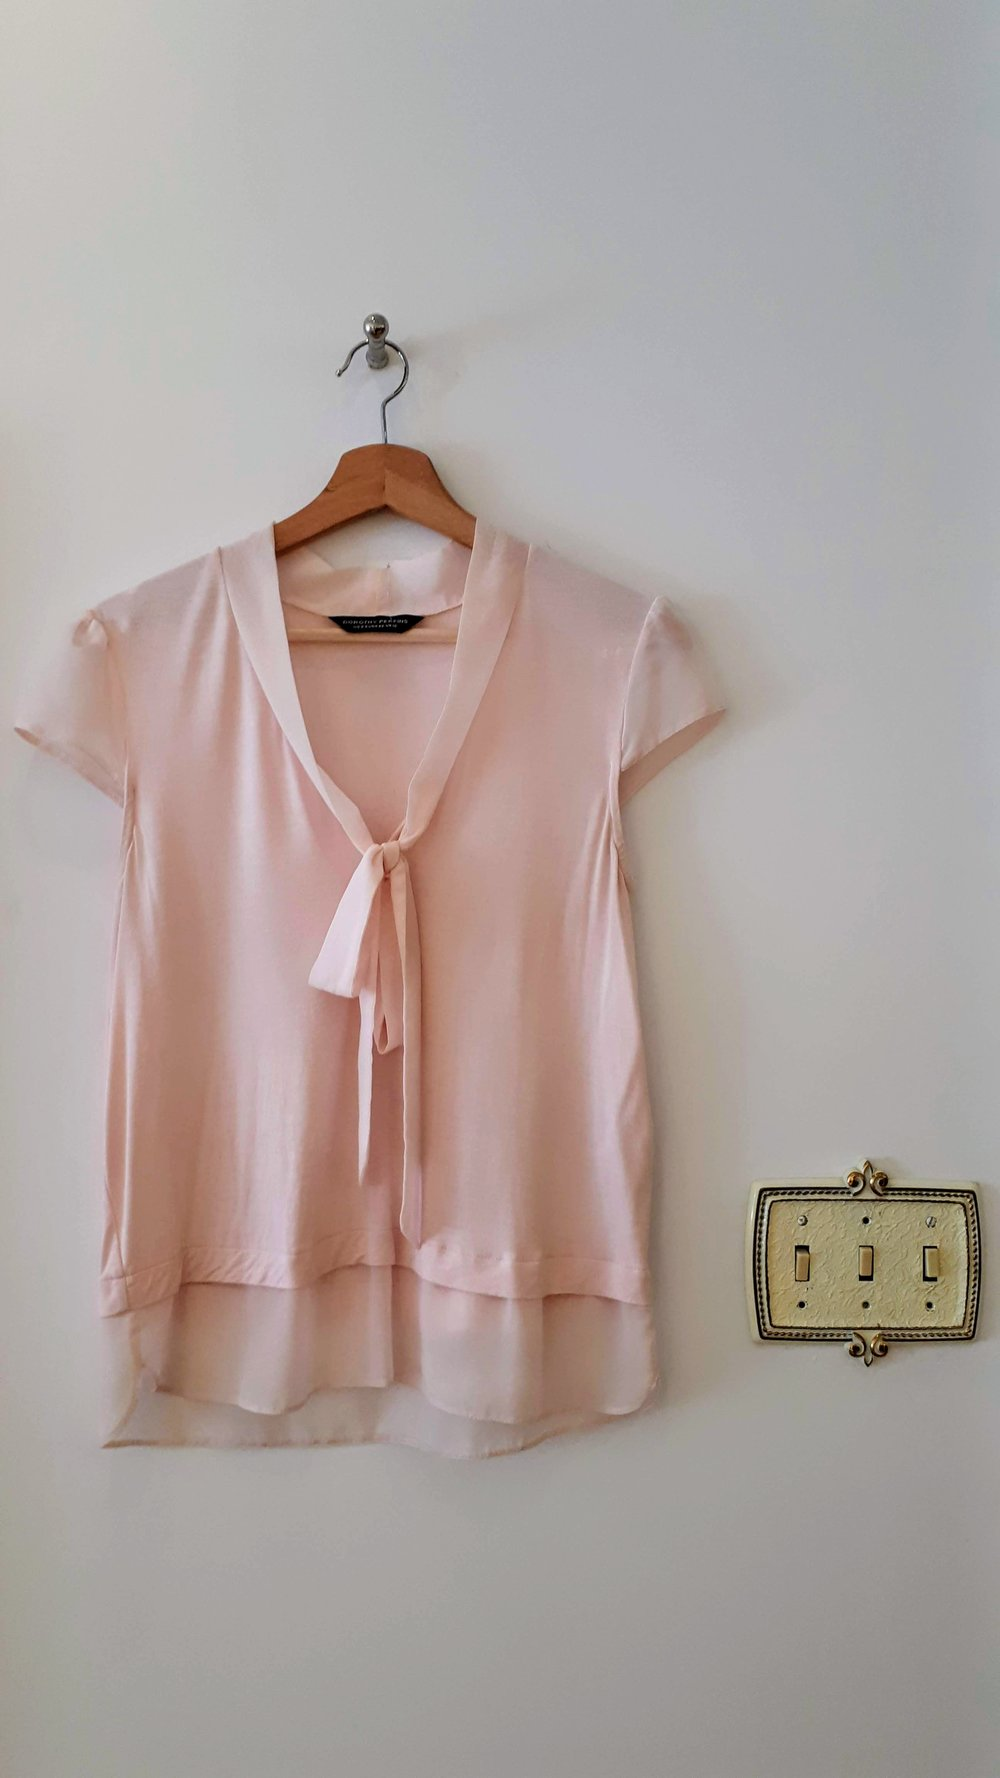 Dorothy Perkins top; Size S, $26